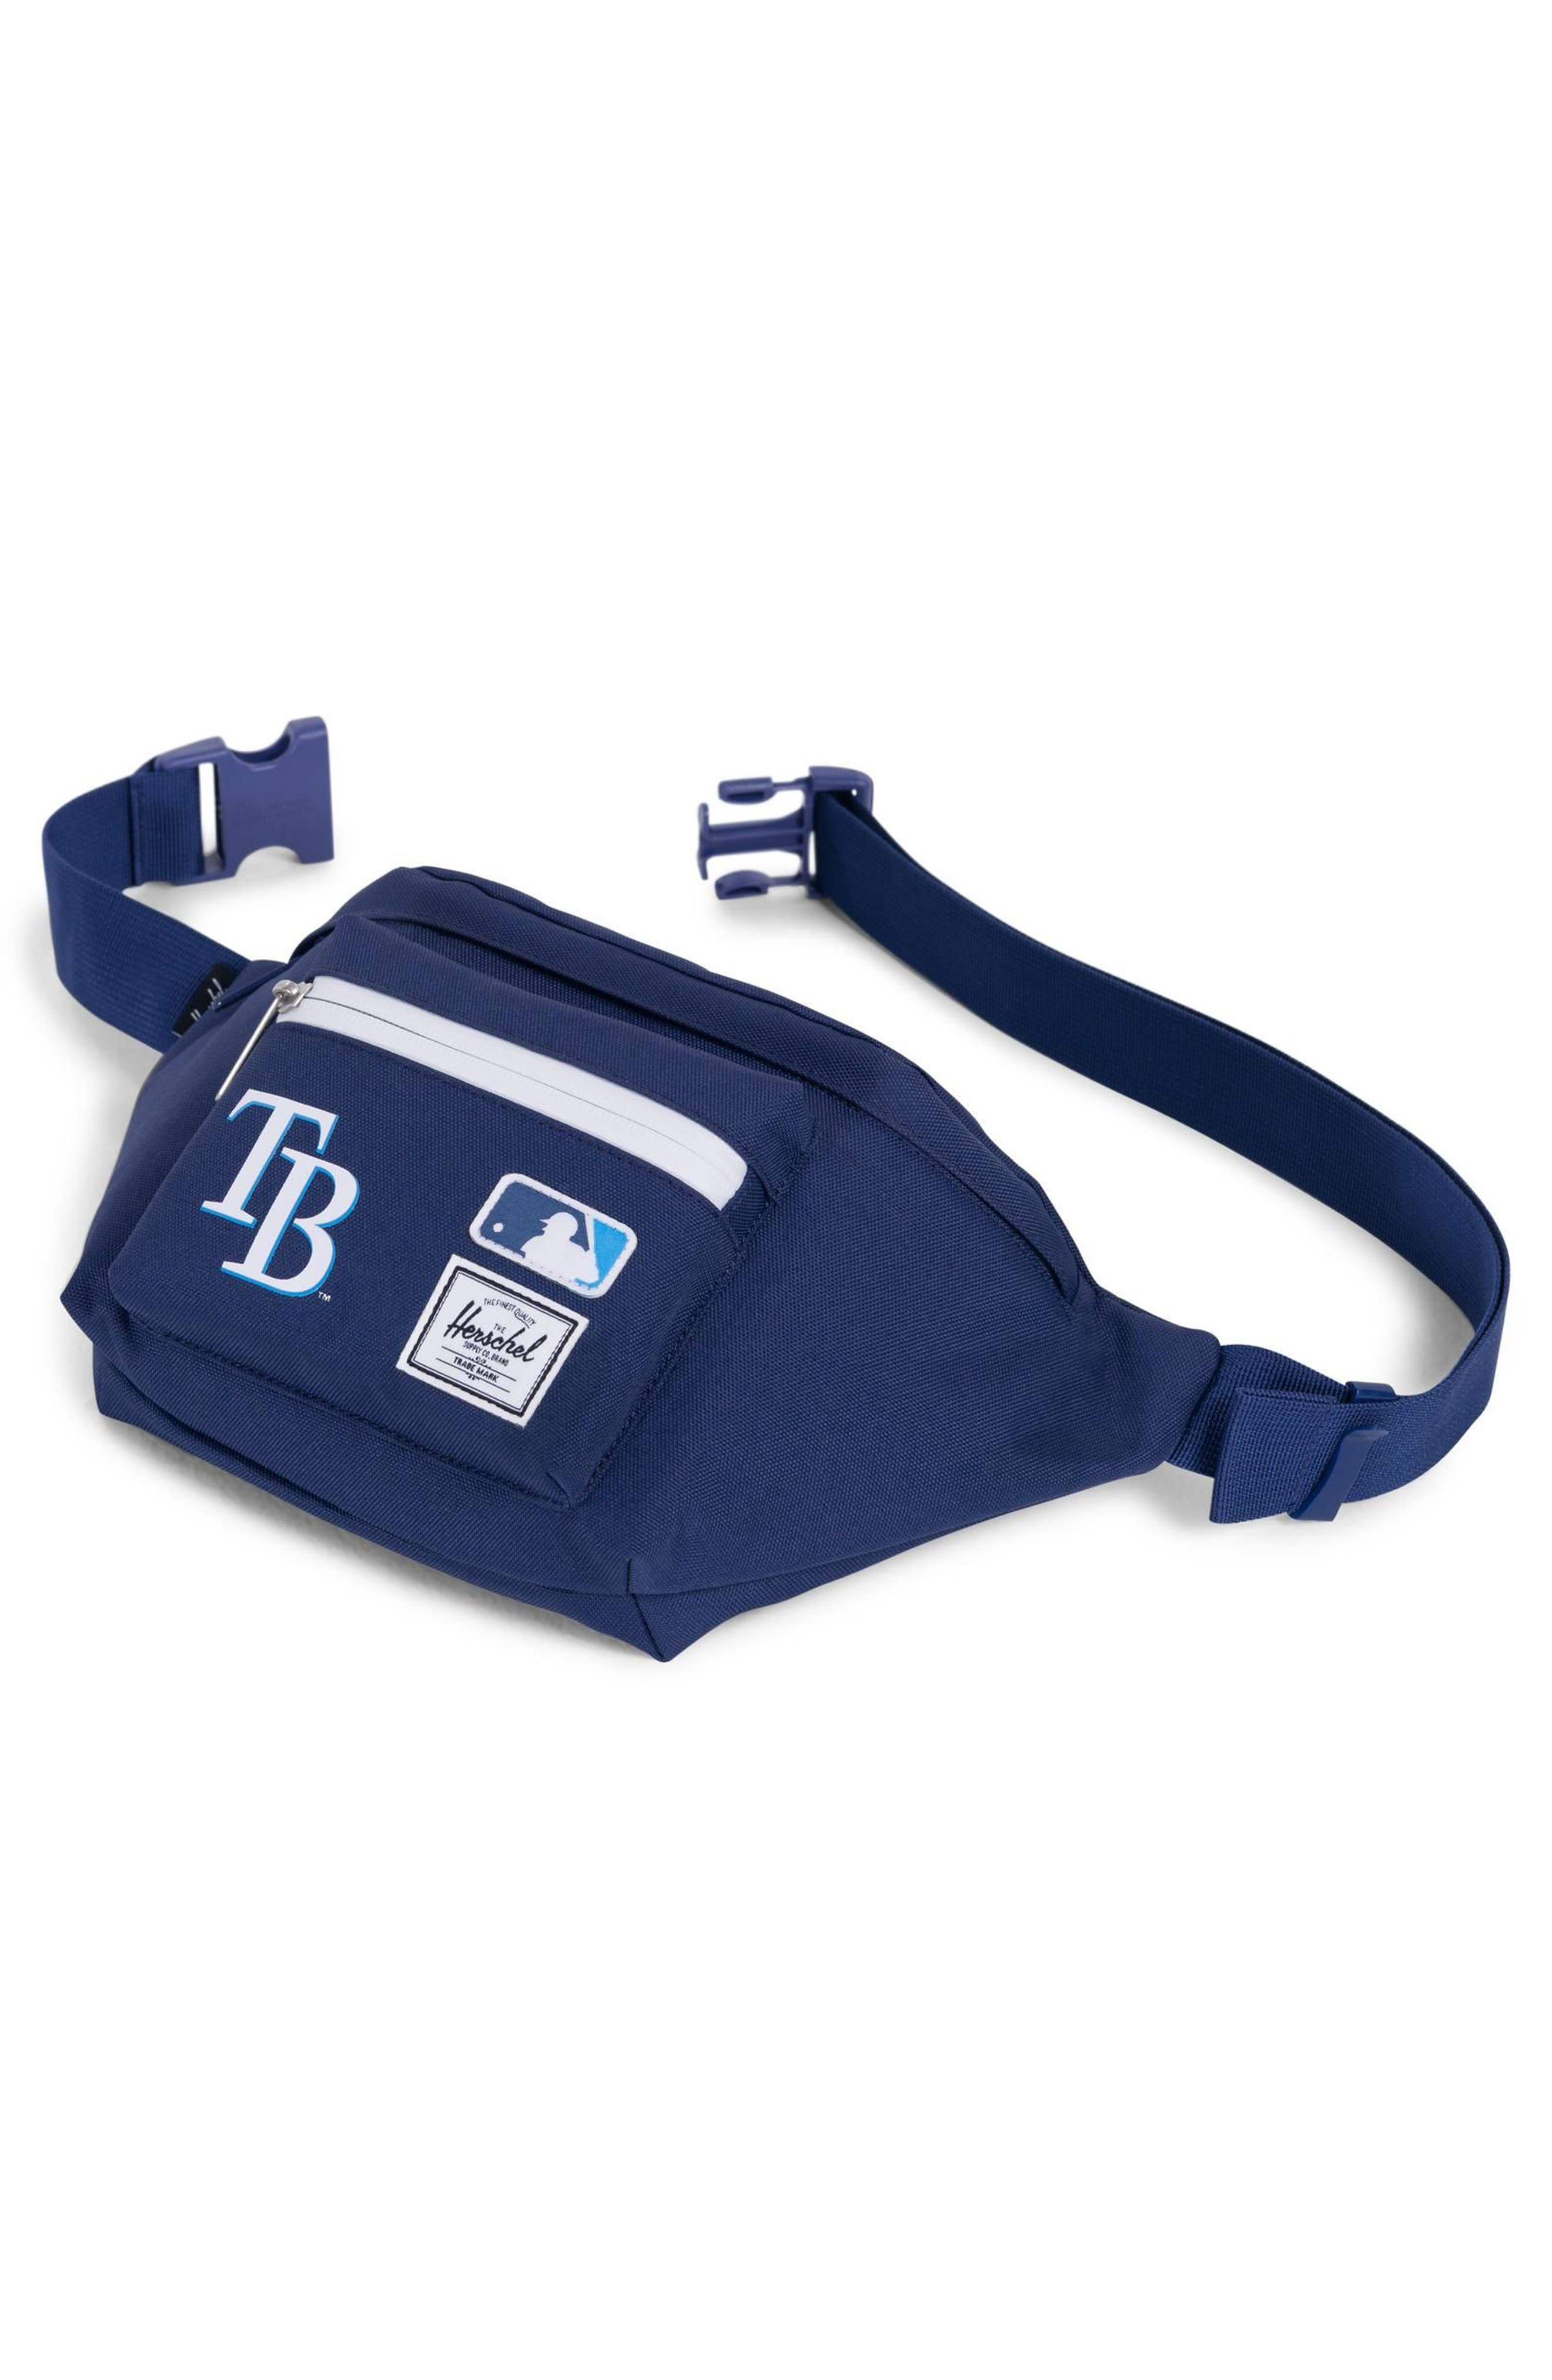 MLB American League Hip Pack,                             Alternate thumbnail 3, color,                             Tampa Bay Rays